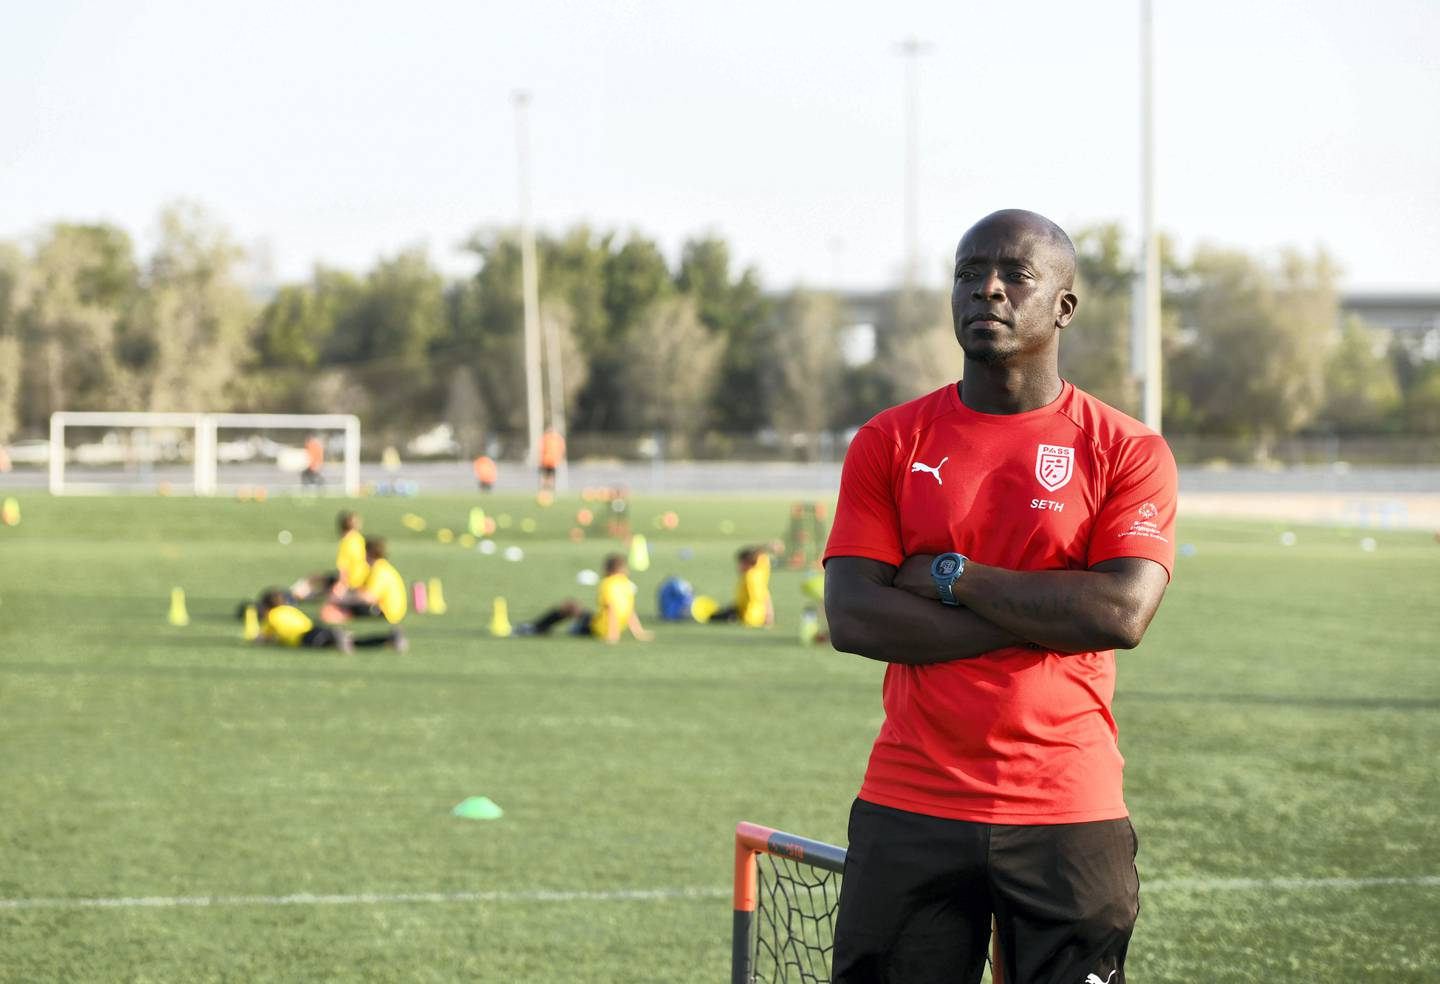 Seth Amoafo-AD Seth Amoafo will be starting a programme with Special Olympics whereby a typical student competes with a person of determination, and works together on specified football skills in Abu Dhabi on May 18, 2021. Khushnum Bhandari / The National  Reporter: Haneen Dajani